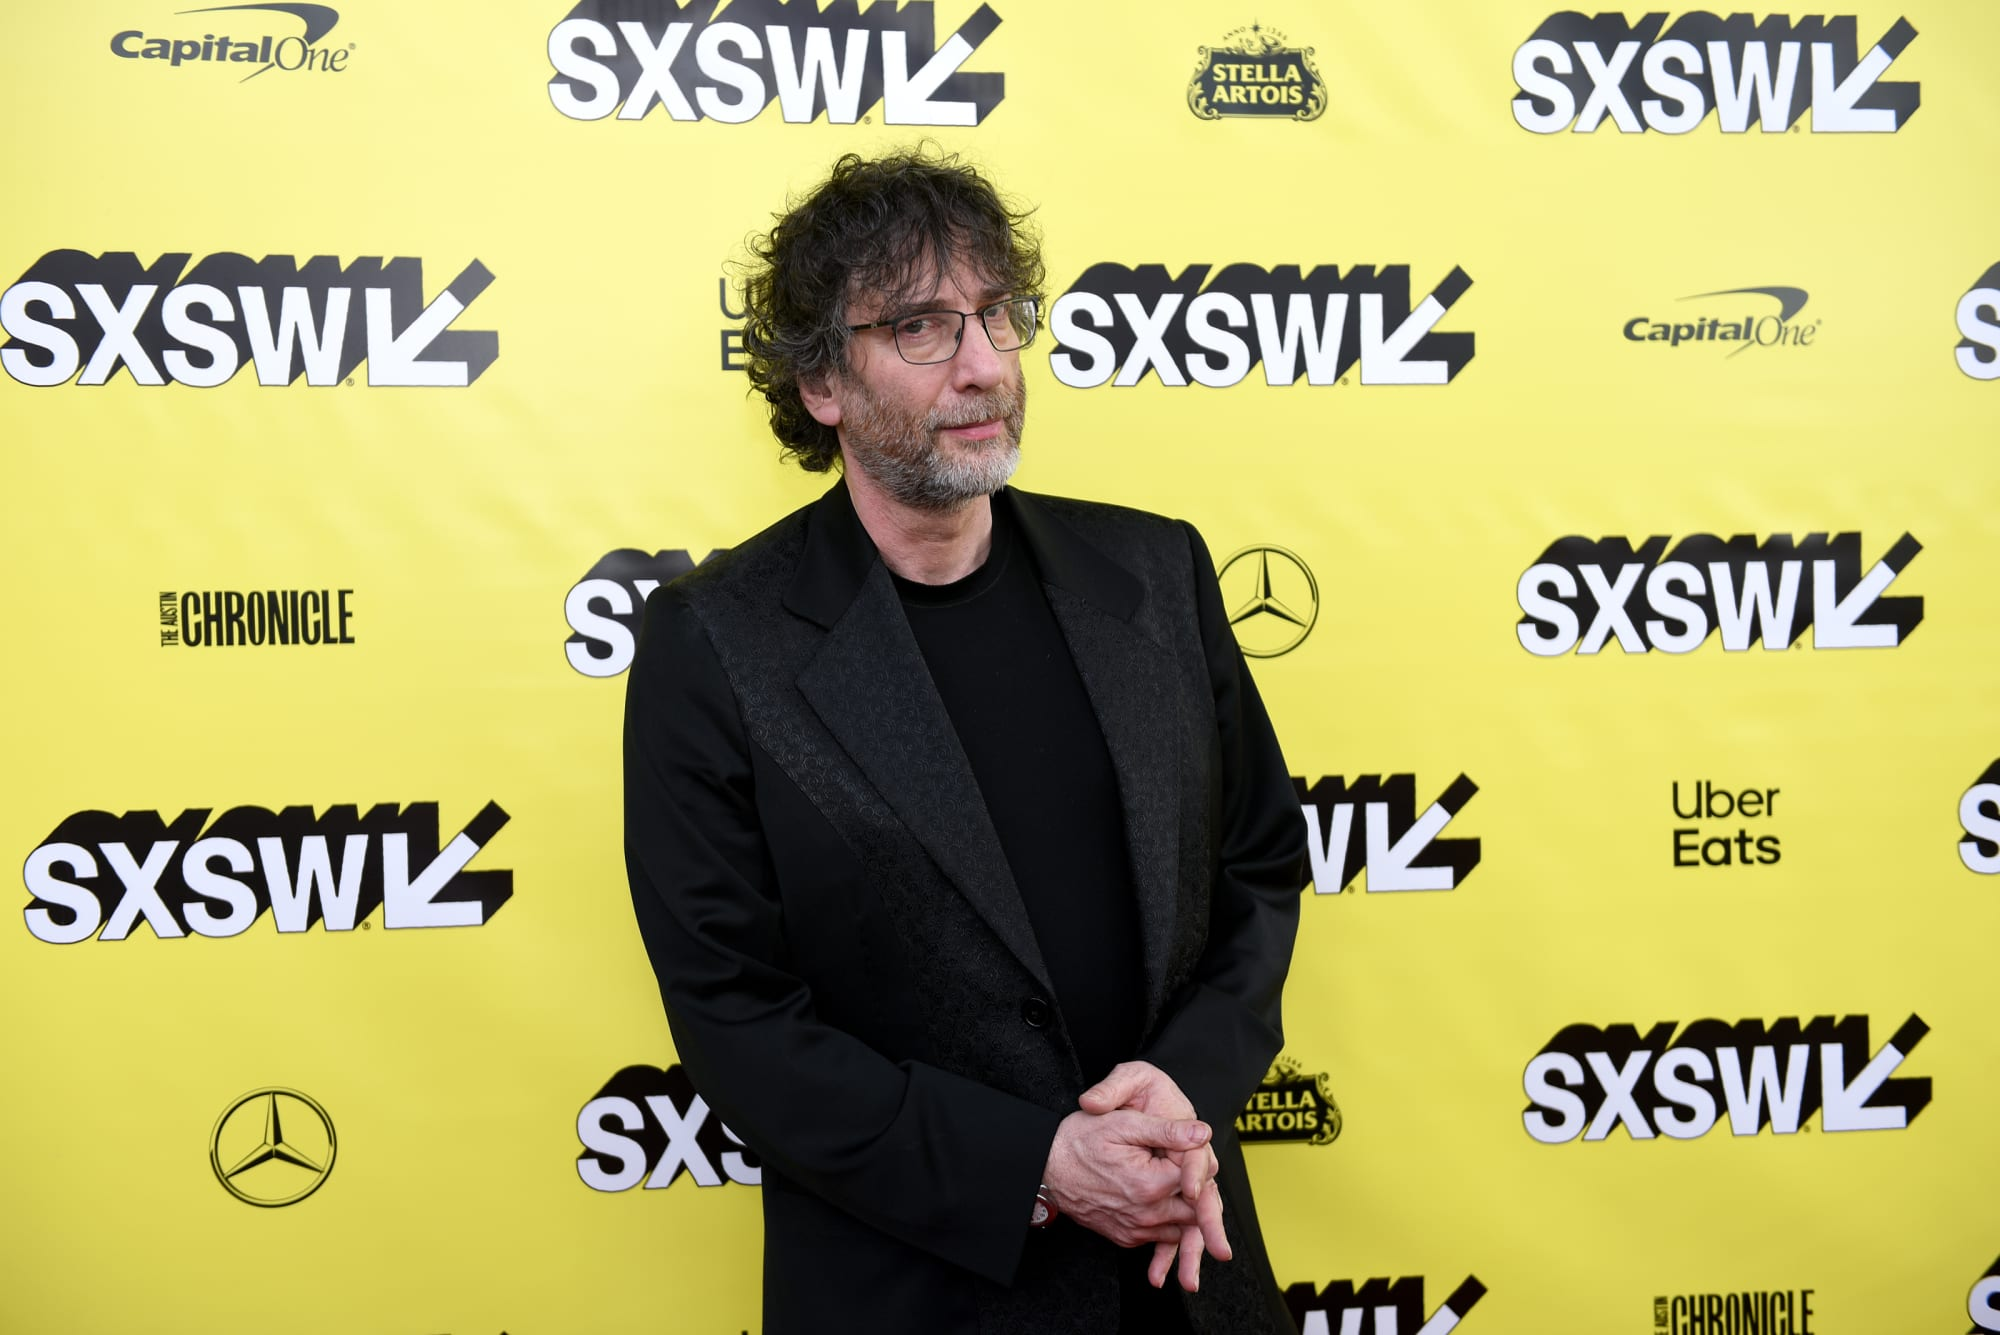 Neil Gaiman remembers starting The Sandman, looks forward to Netflix adaptation